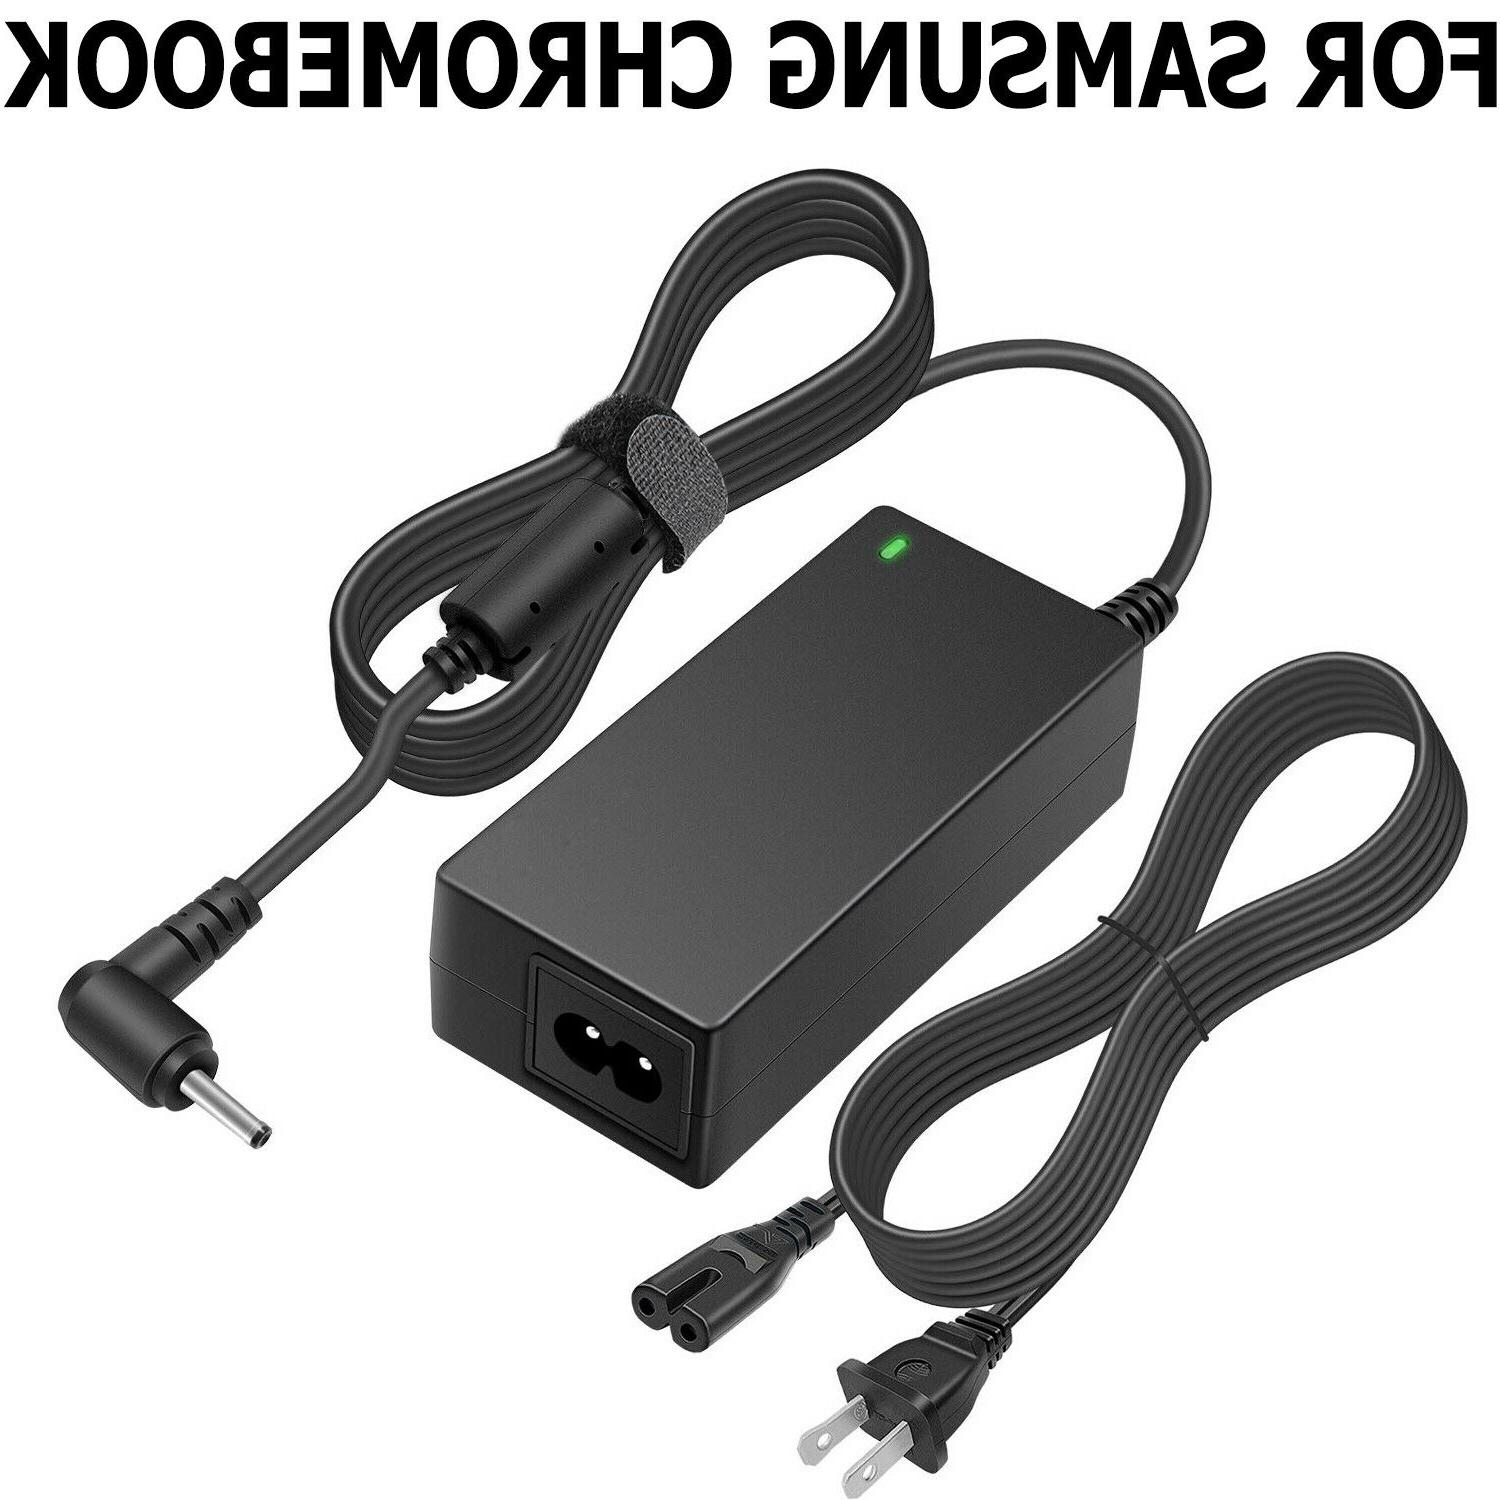 ac adapter power supply cable cord